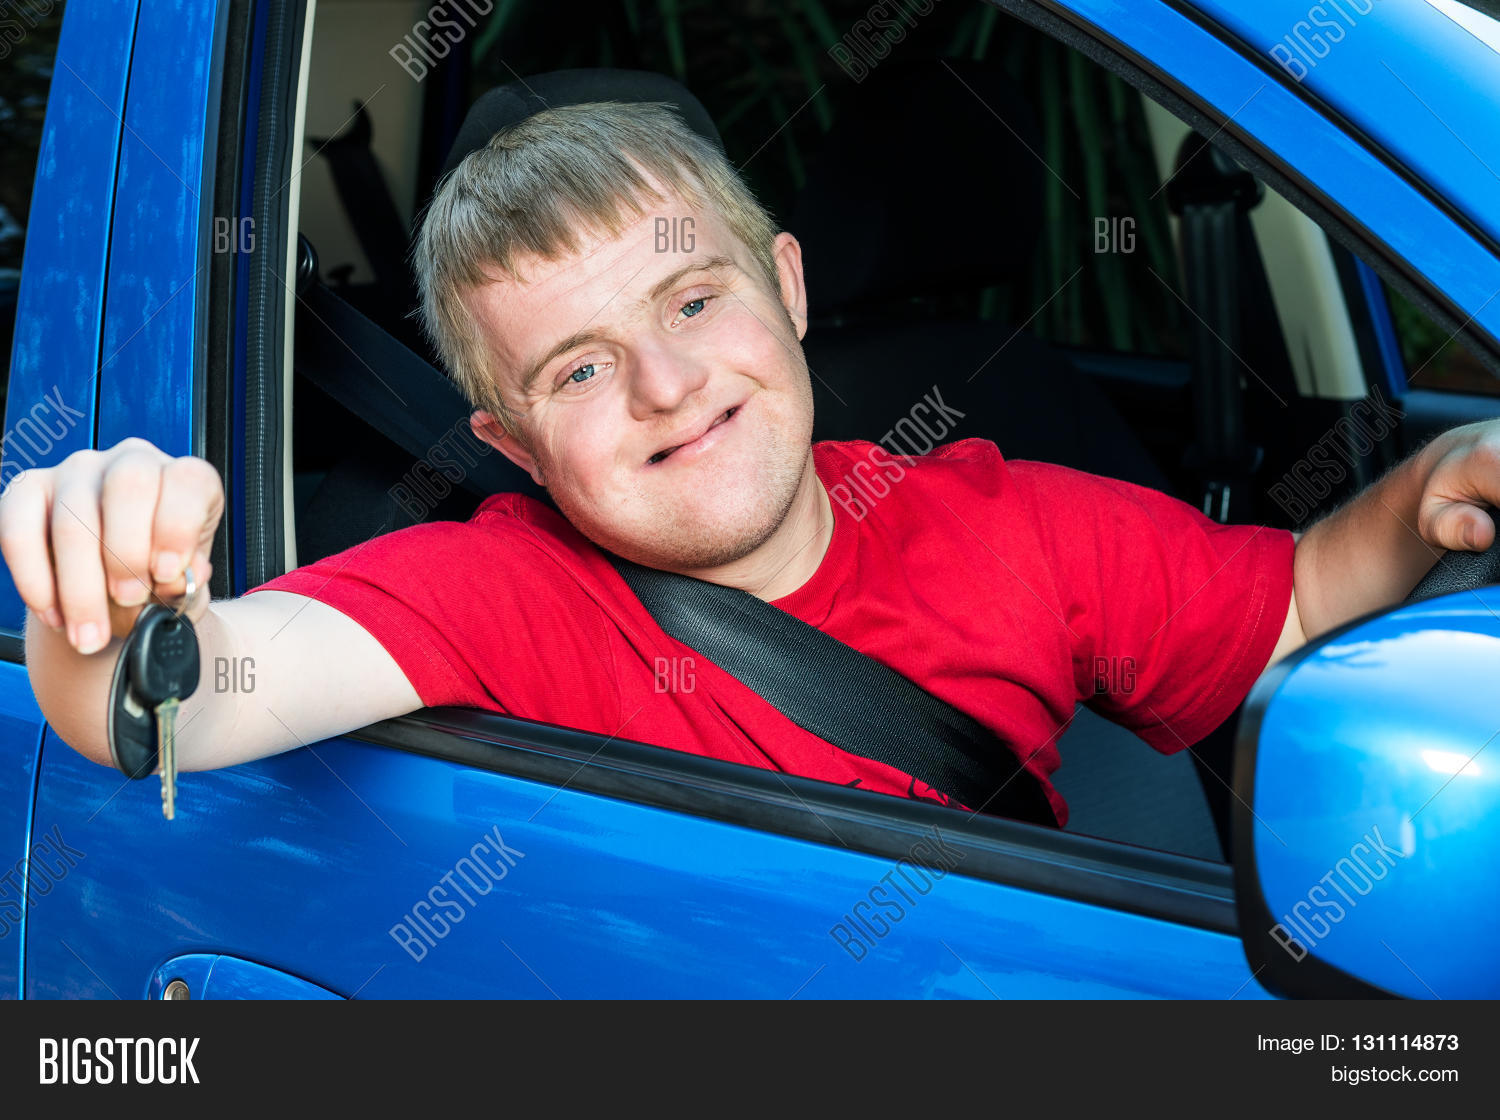 close portrait young car driver image photo bigstock. Black Bedroom Furniture Sets. Home Design Ideas